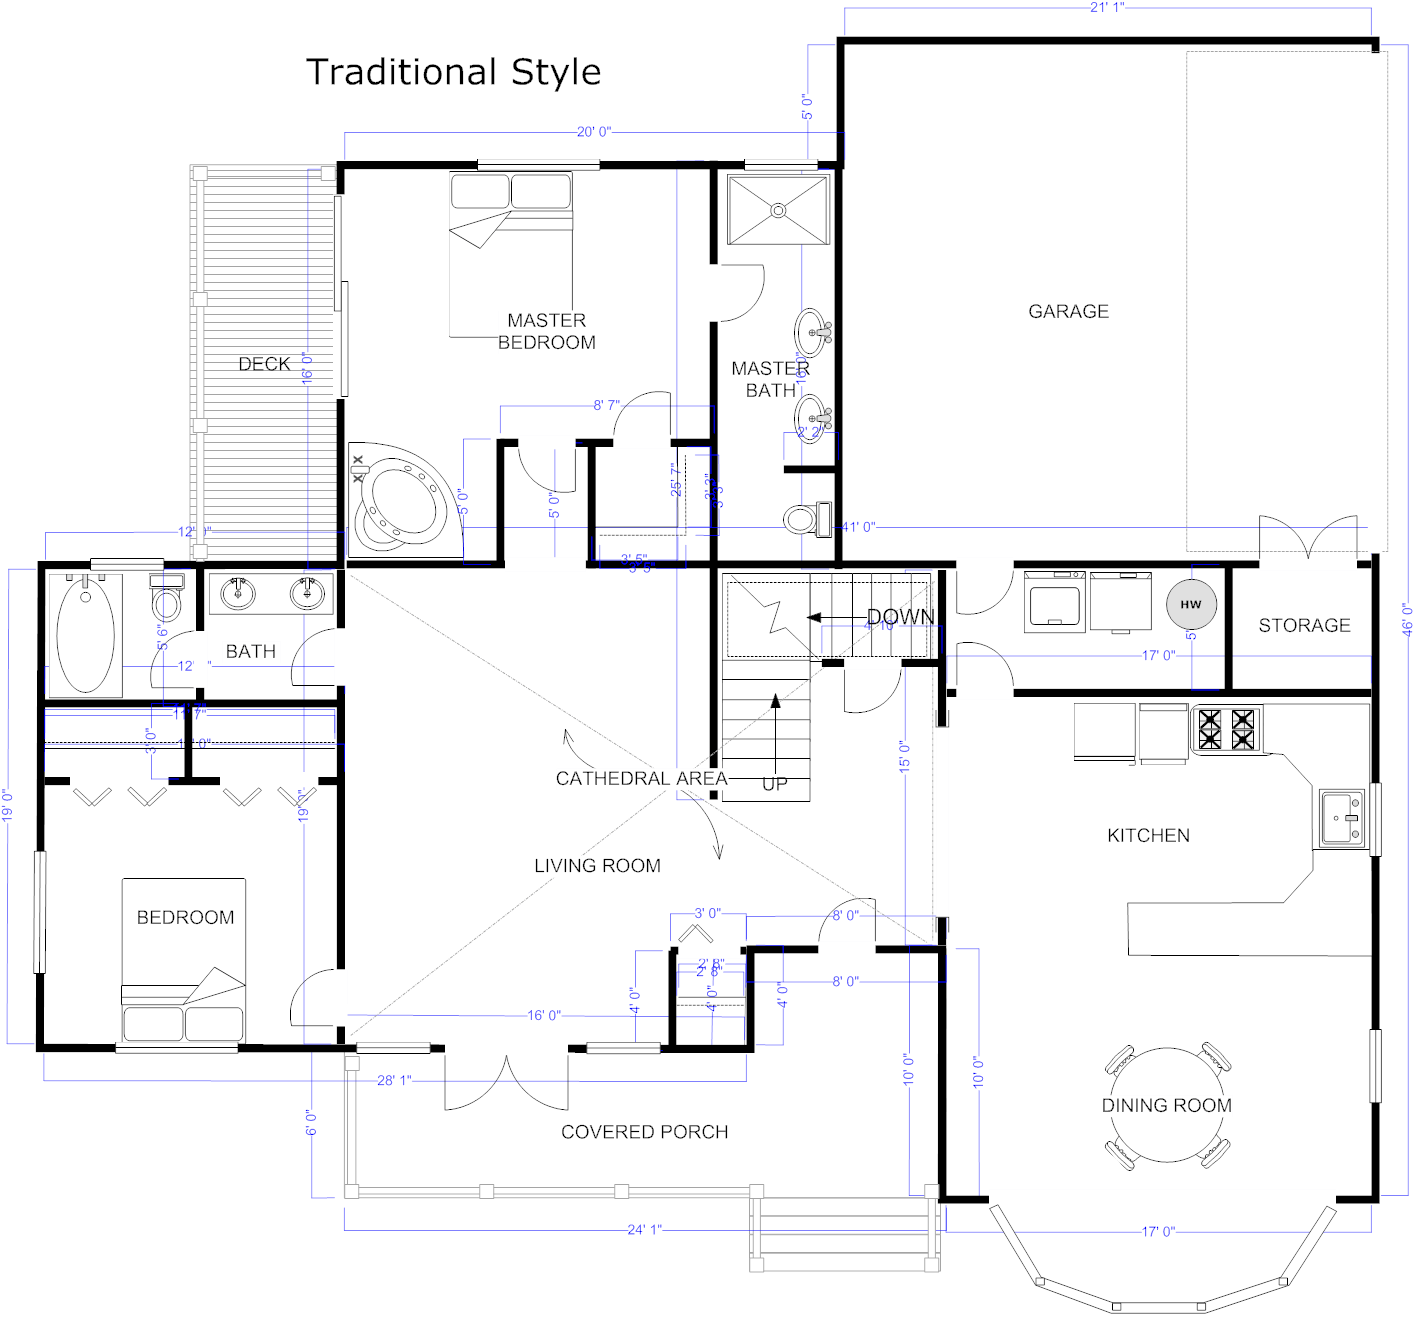 Floor plan maker draw floor plans with floor plan templates Make a house blueprint online free